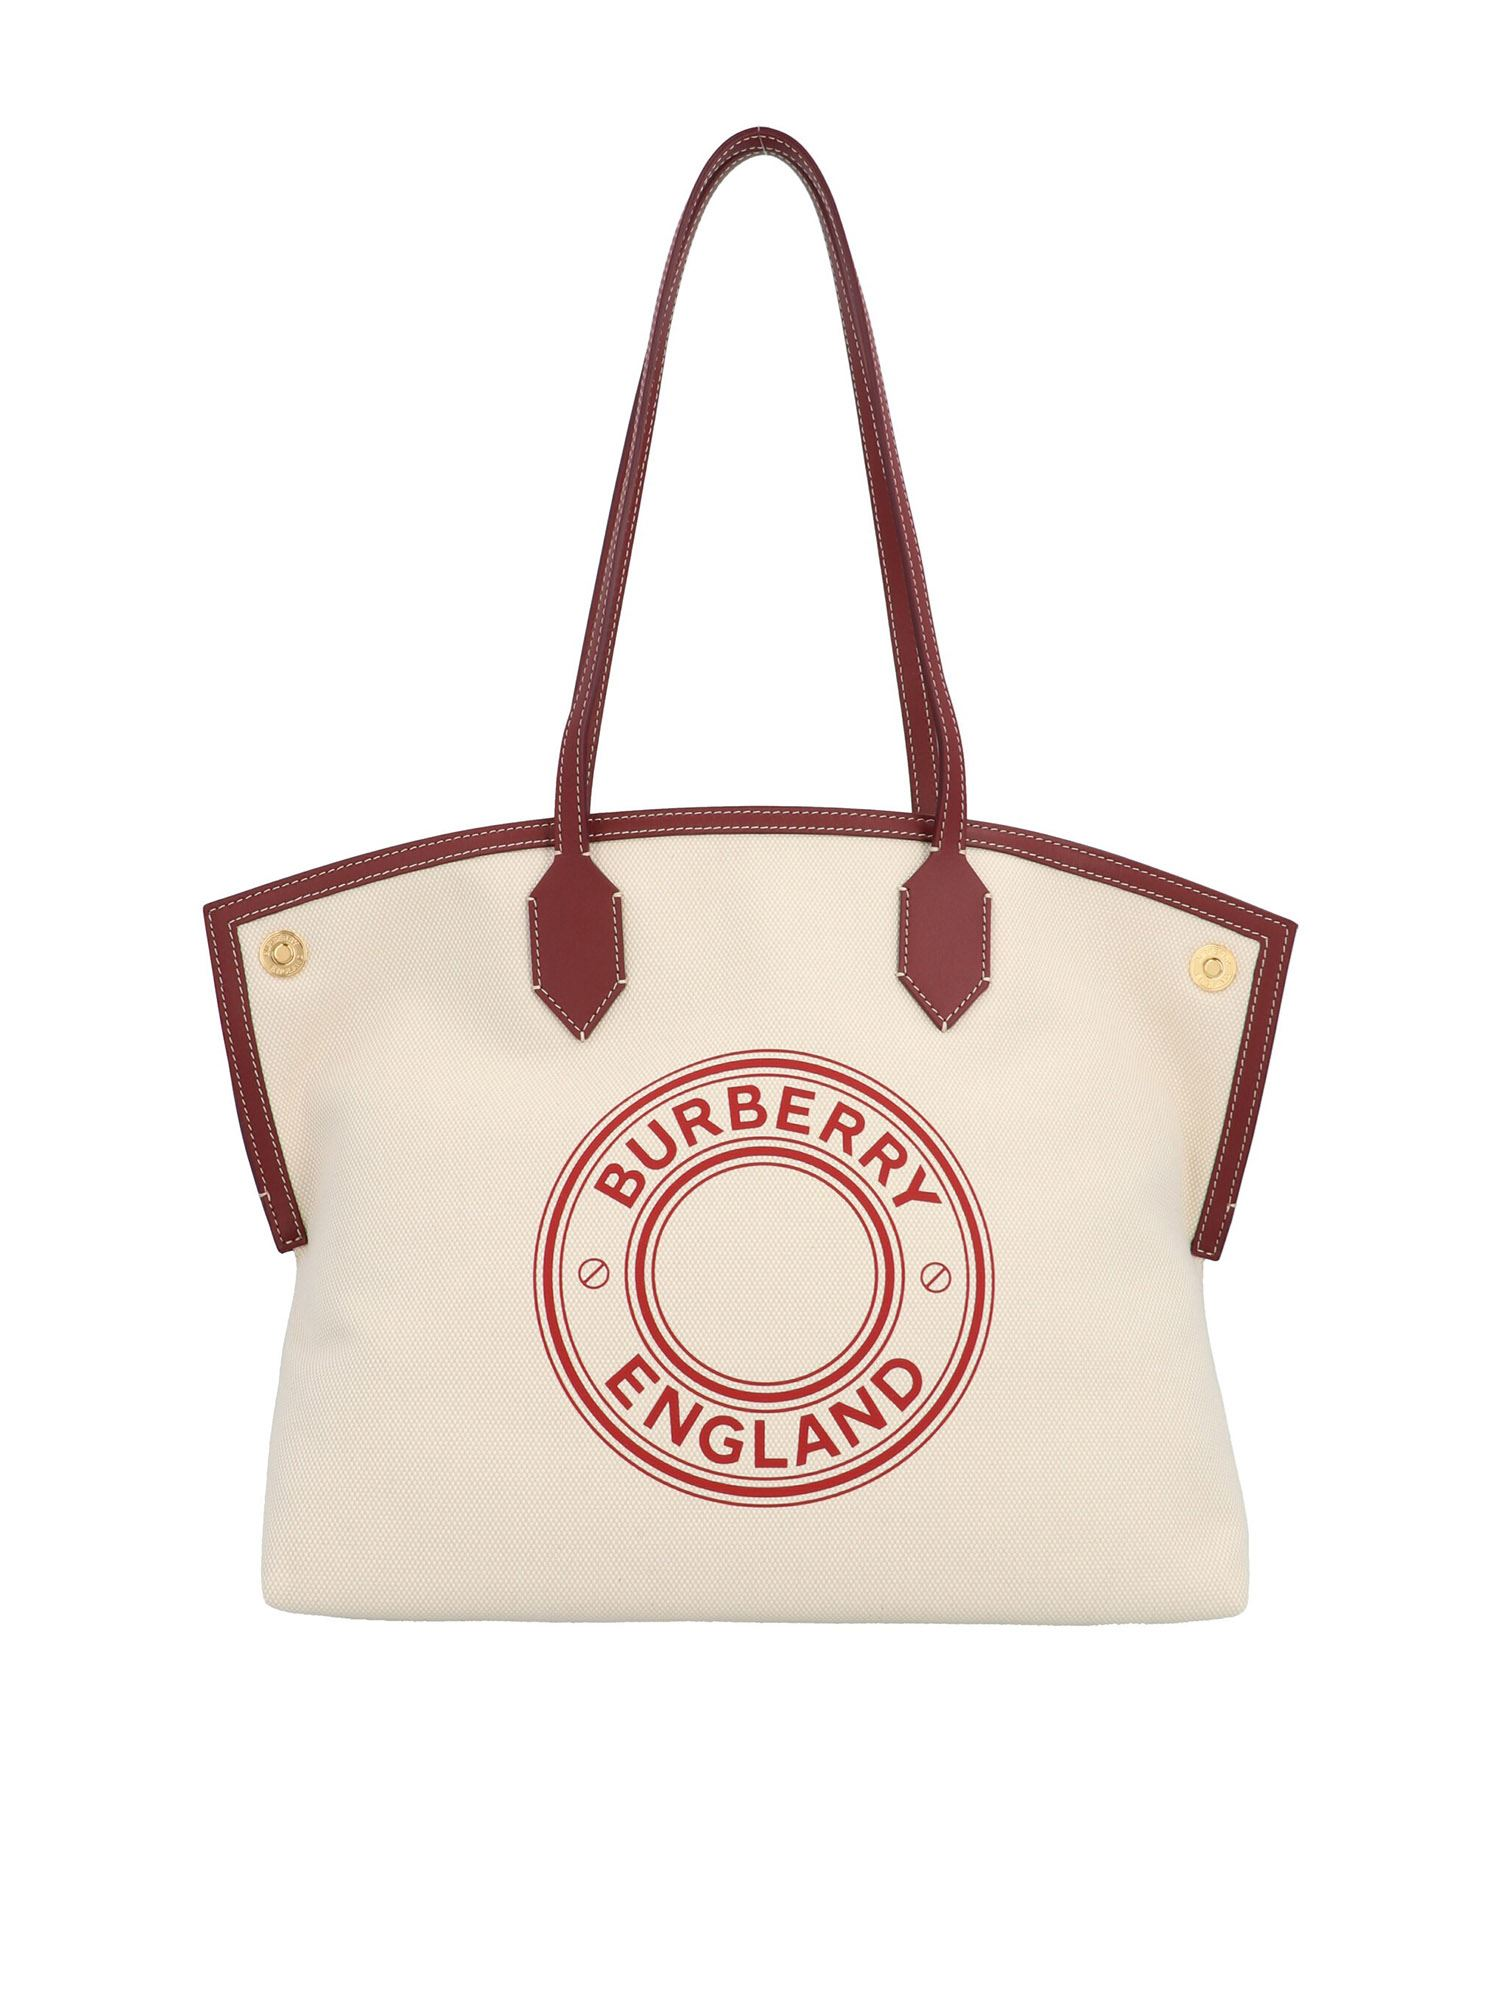 Burberry Medium Tote Society Bag In White And Burgundy In Red